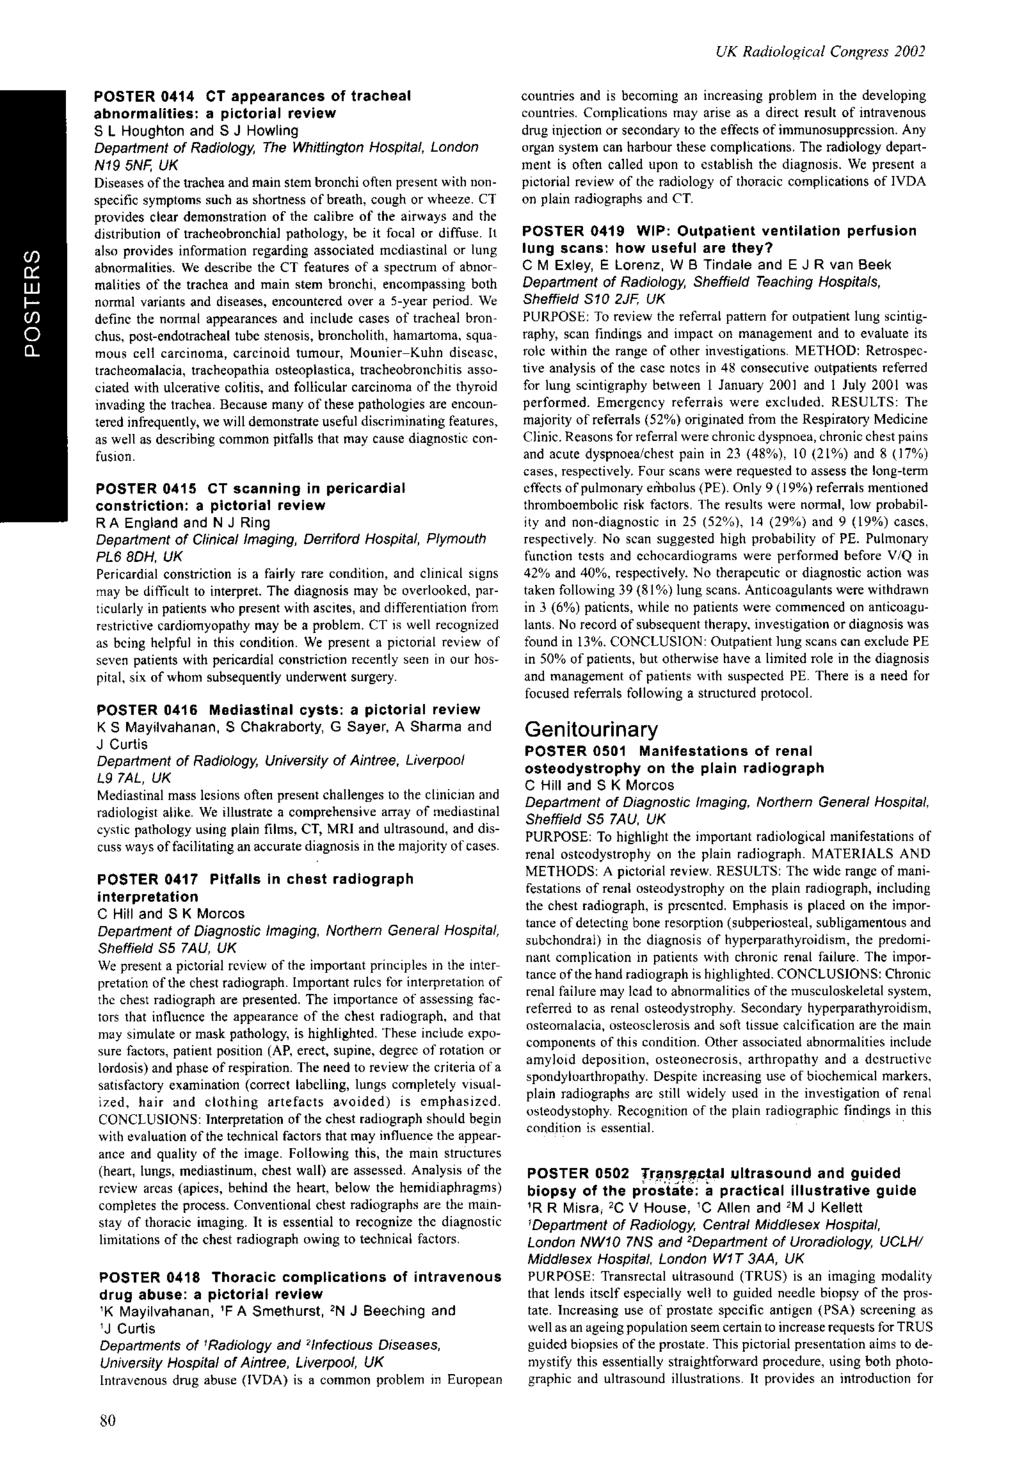 POSTER 044 CT appearances of tracheal abnormalities: a pictorial review S L Houghton and S J Howling Department of Radiology, The Whittington Hospital, London N9 5NF, UK Diseases of the trachea and